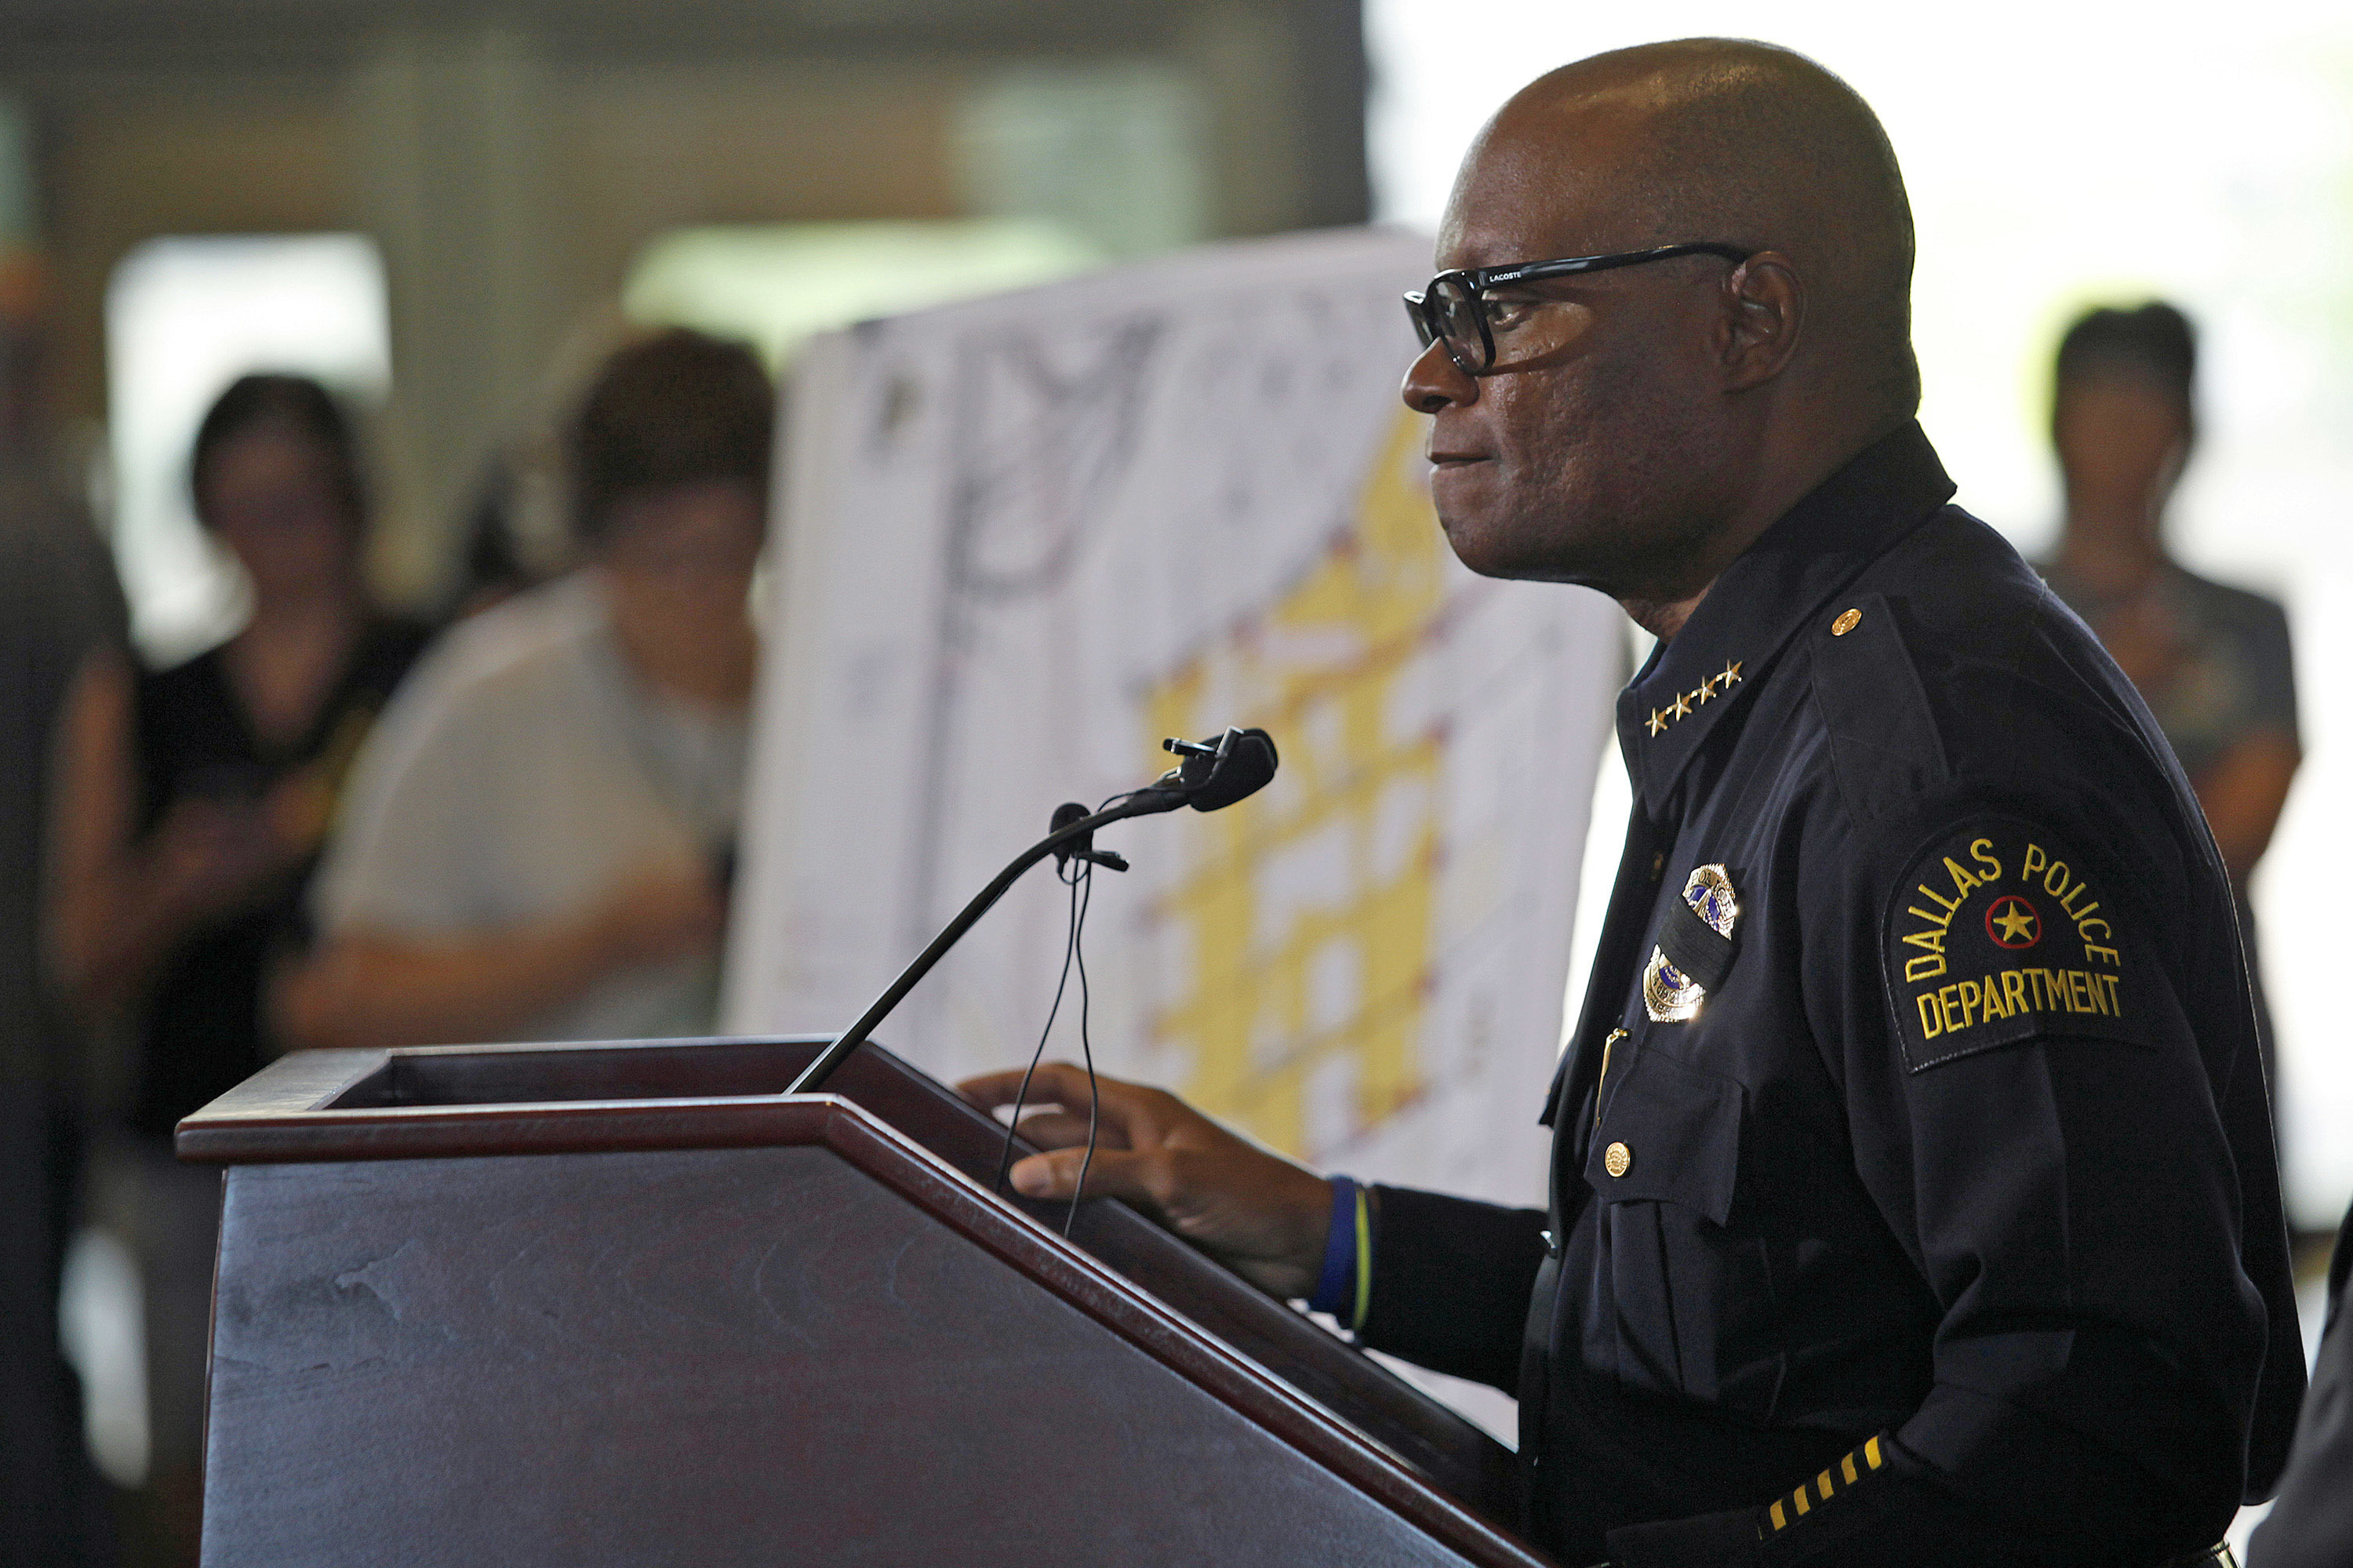 Dallas Police Chief David Brown speaks at a city hall press conference on the fatal shootings of five police officers on Friday. (Photo by Stewart F. House/Getty Images)